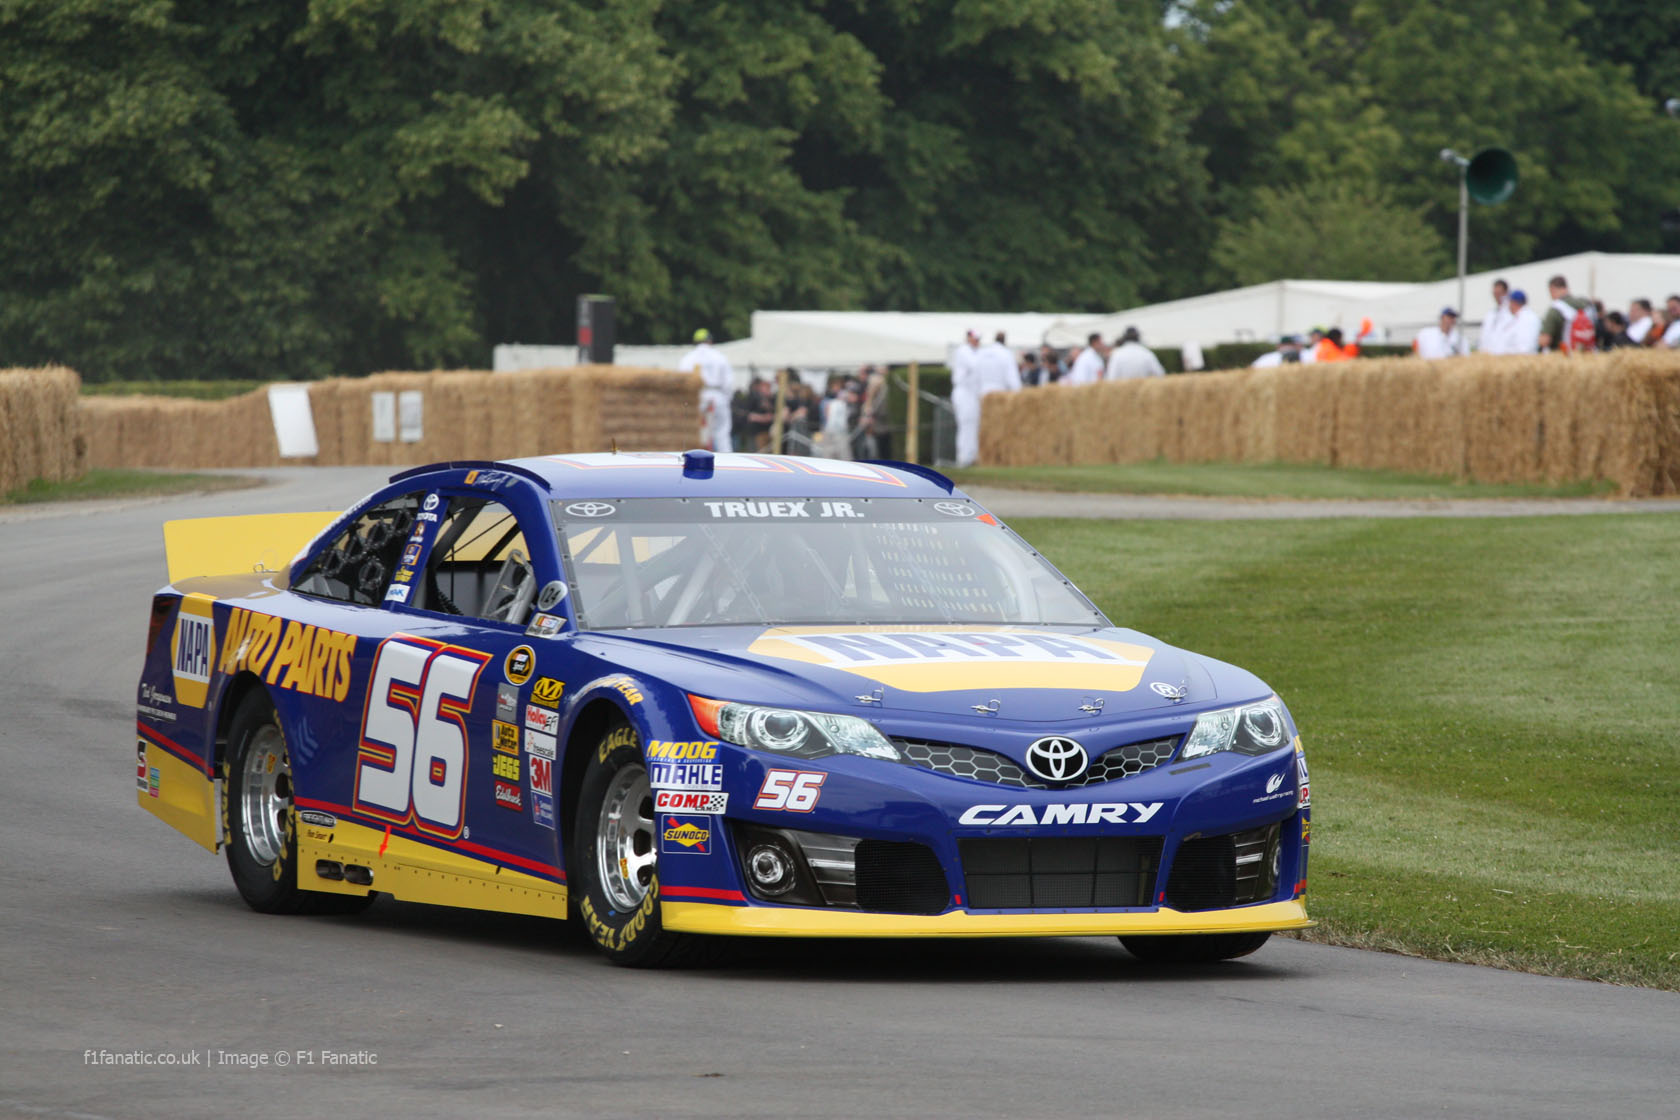 Toyota Camry, Goodwood Festival of Speed, 2014